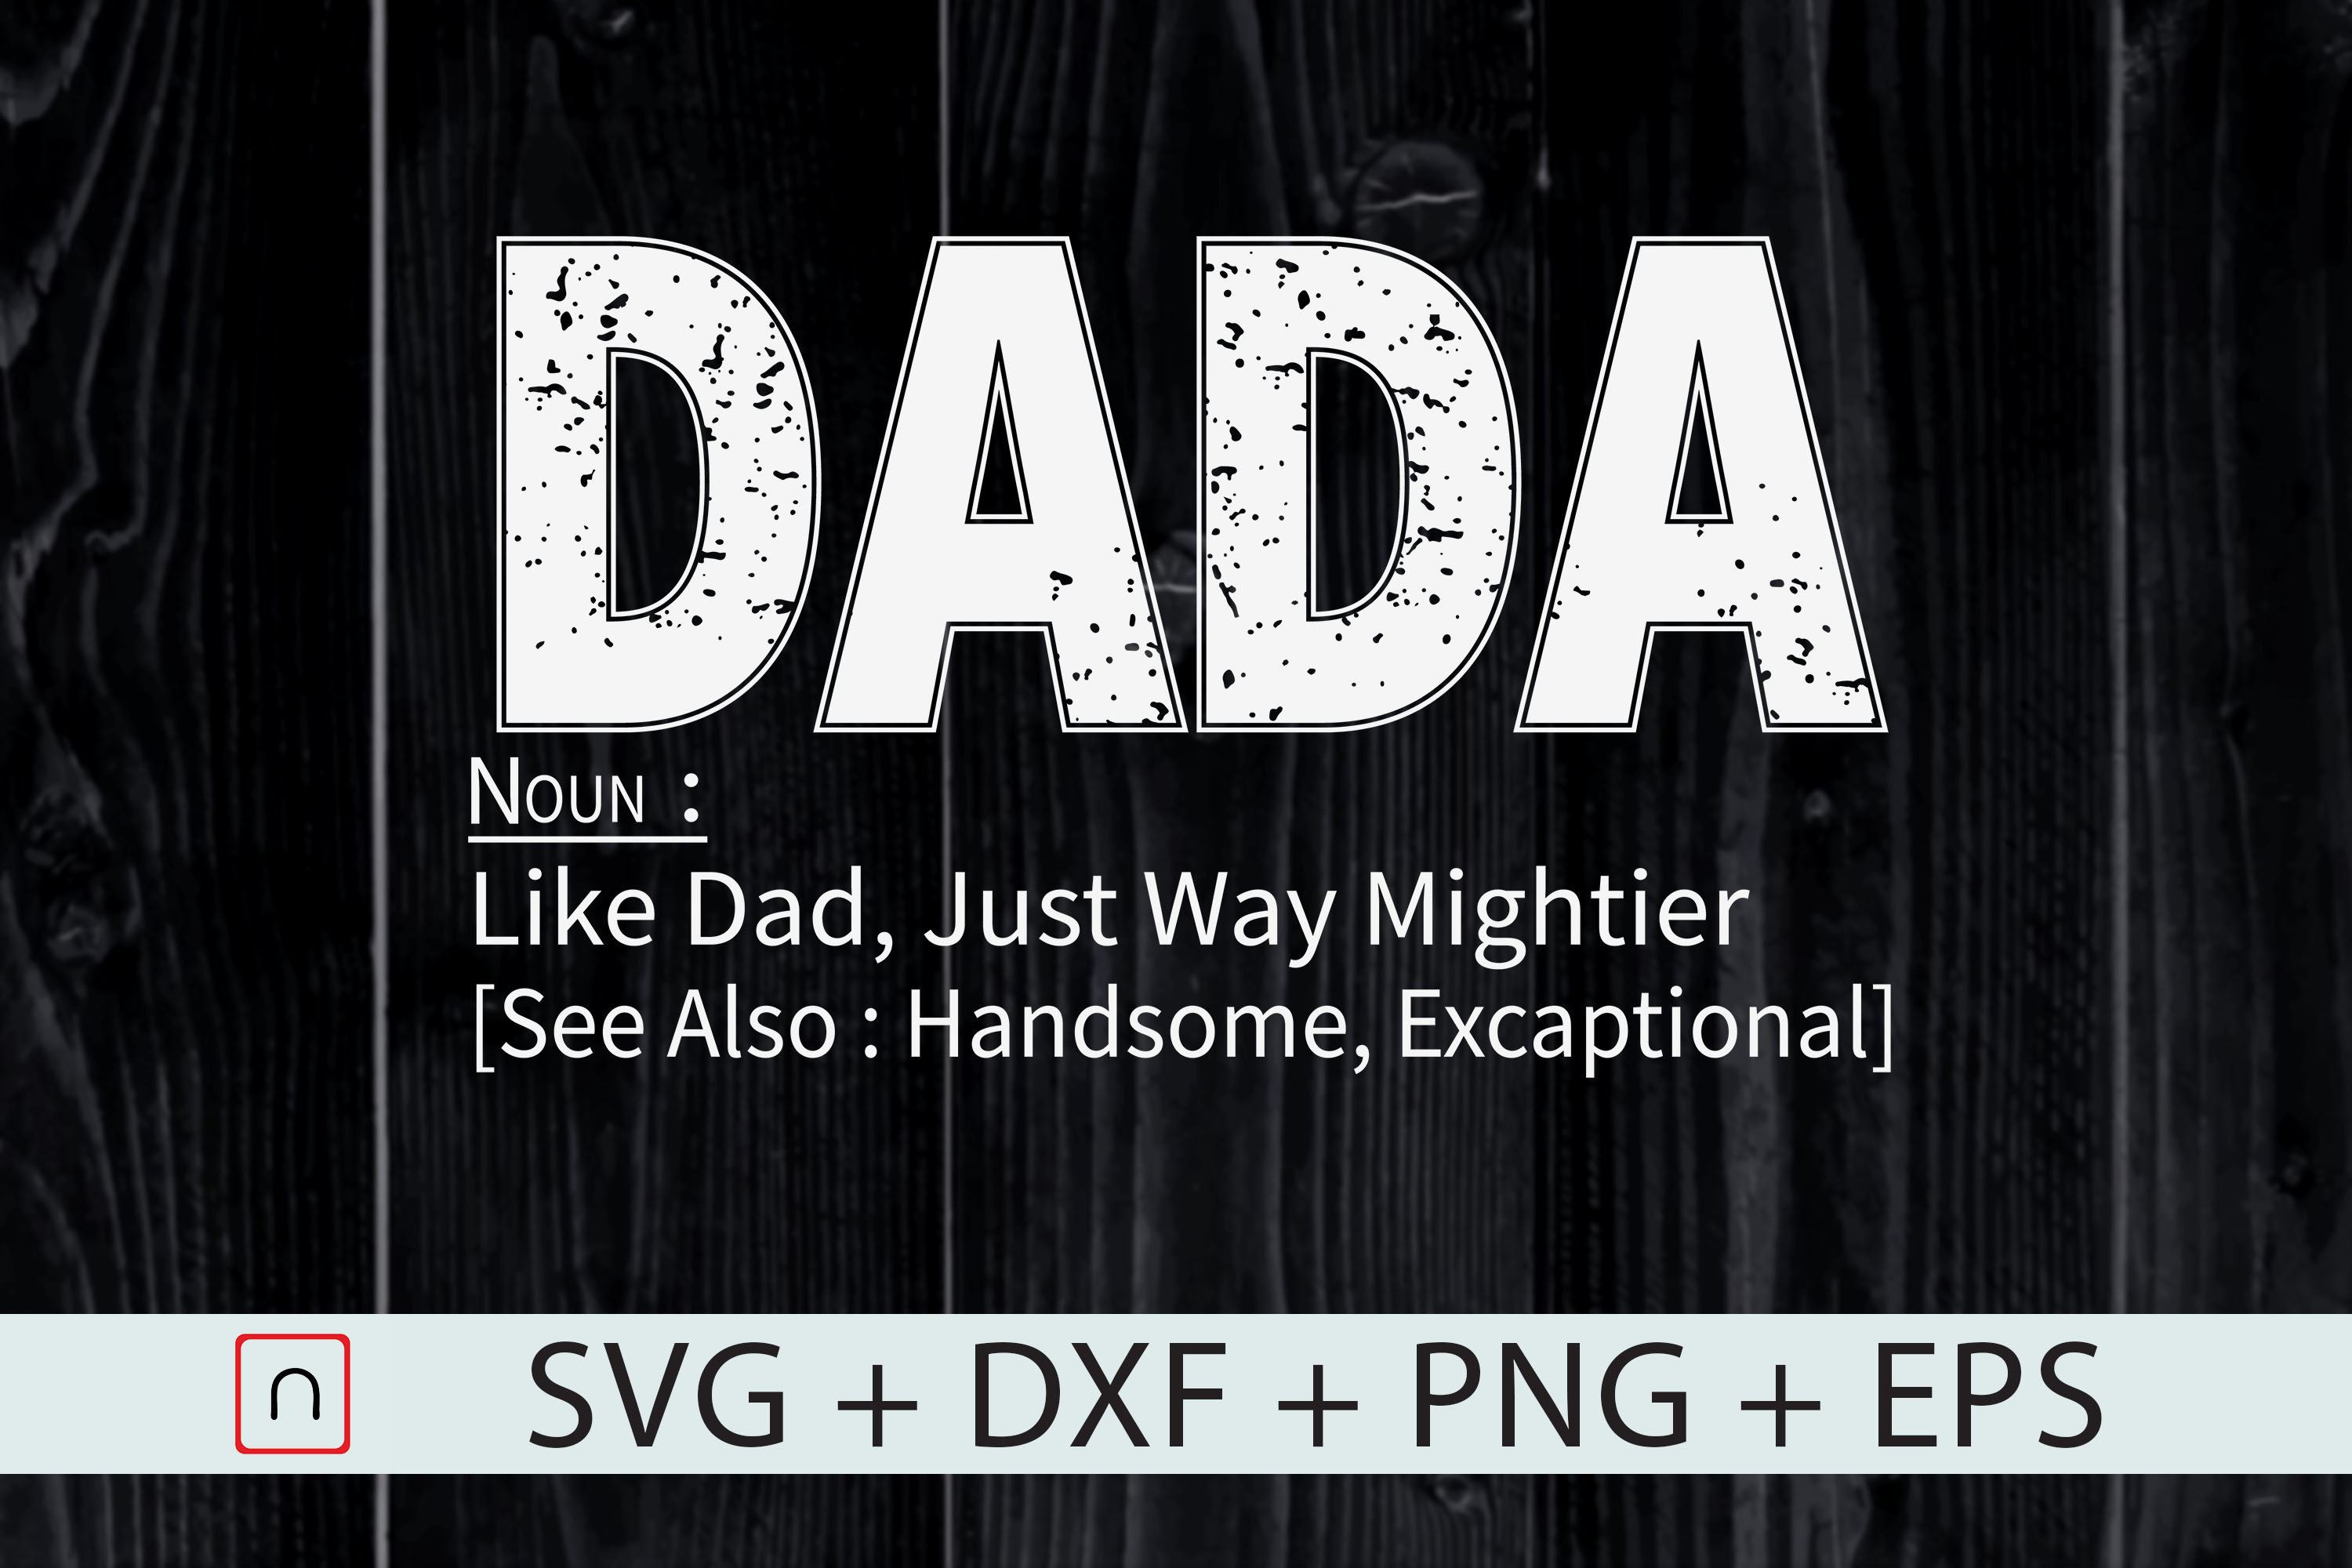 Download Free Dada Definition Graphic By Novalia Creative Fabrica for Cricut Explore, Silhouette and other cutting machines.